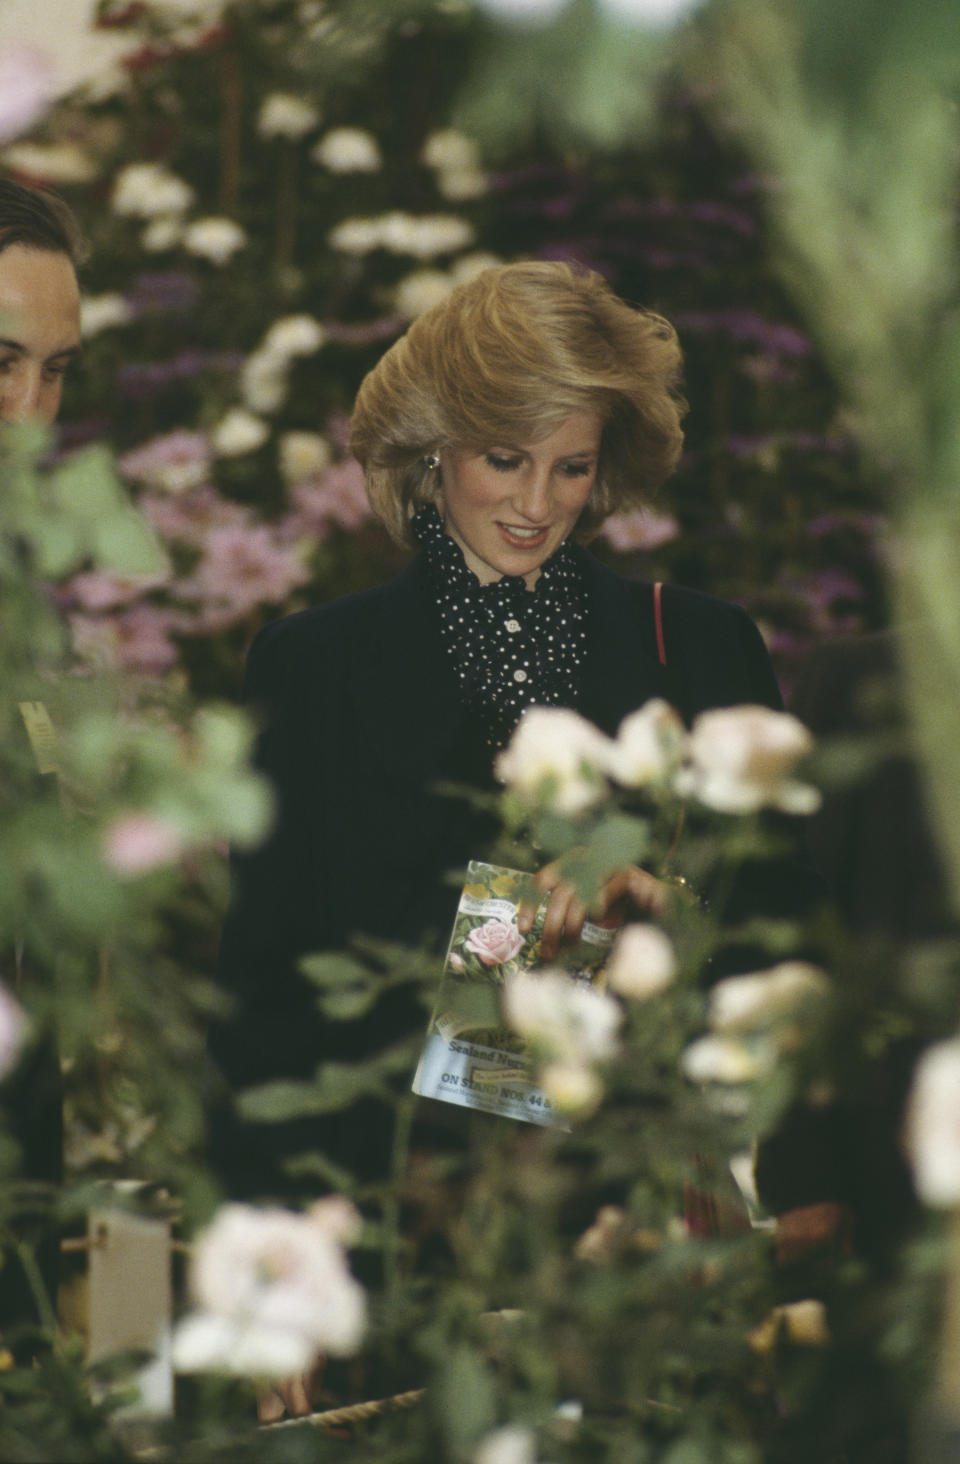 Diana, Princess of Wales  (1961 - 1997) at the Chelsea Flower Show in London, May 1984.   (Photo by Jayne Fincher/Princess Diana Archive/Getty Images)